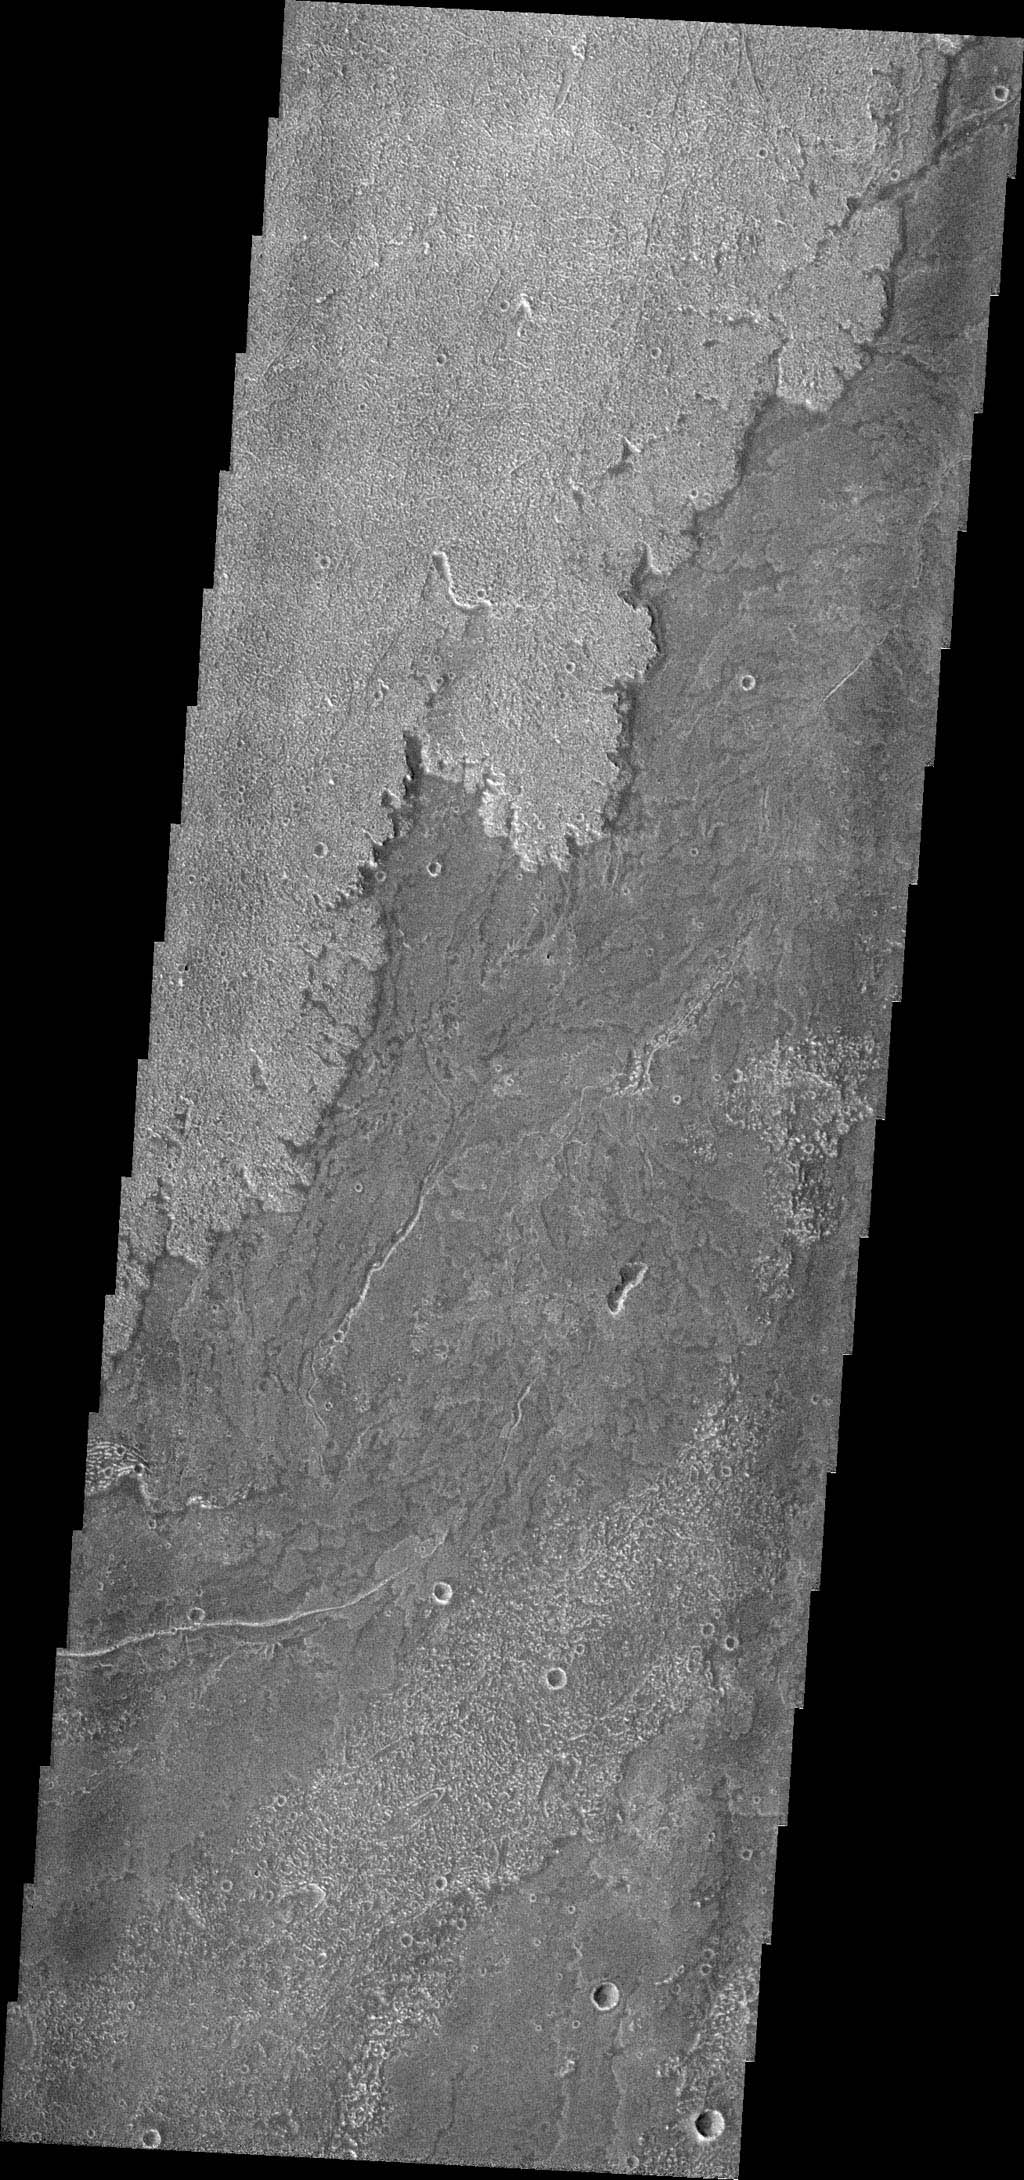 Innumerable lava flows from Arsia Mons make up the volcanic plains called Daedalia Planum as seen by NASA's 2001 Mars Odyssey.